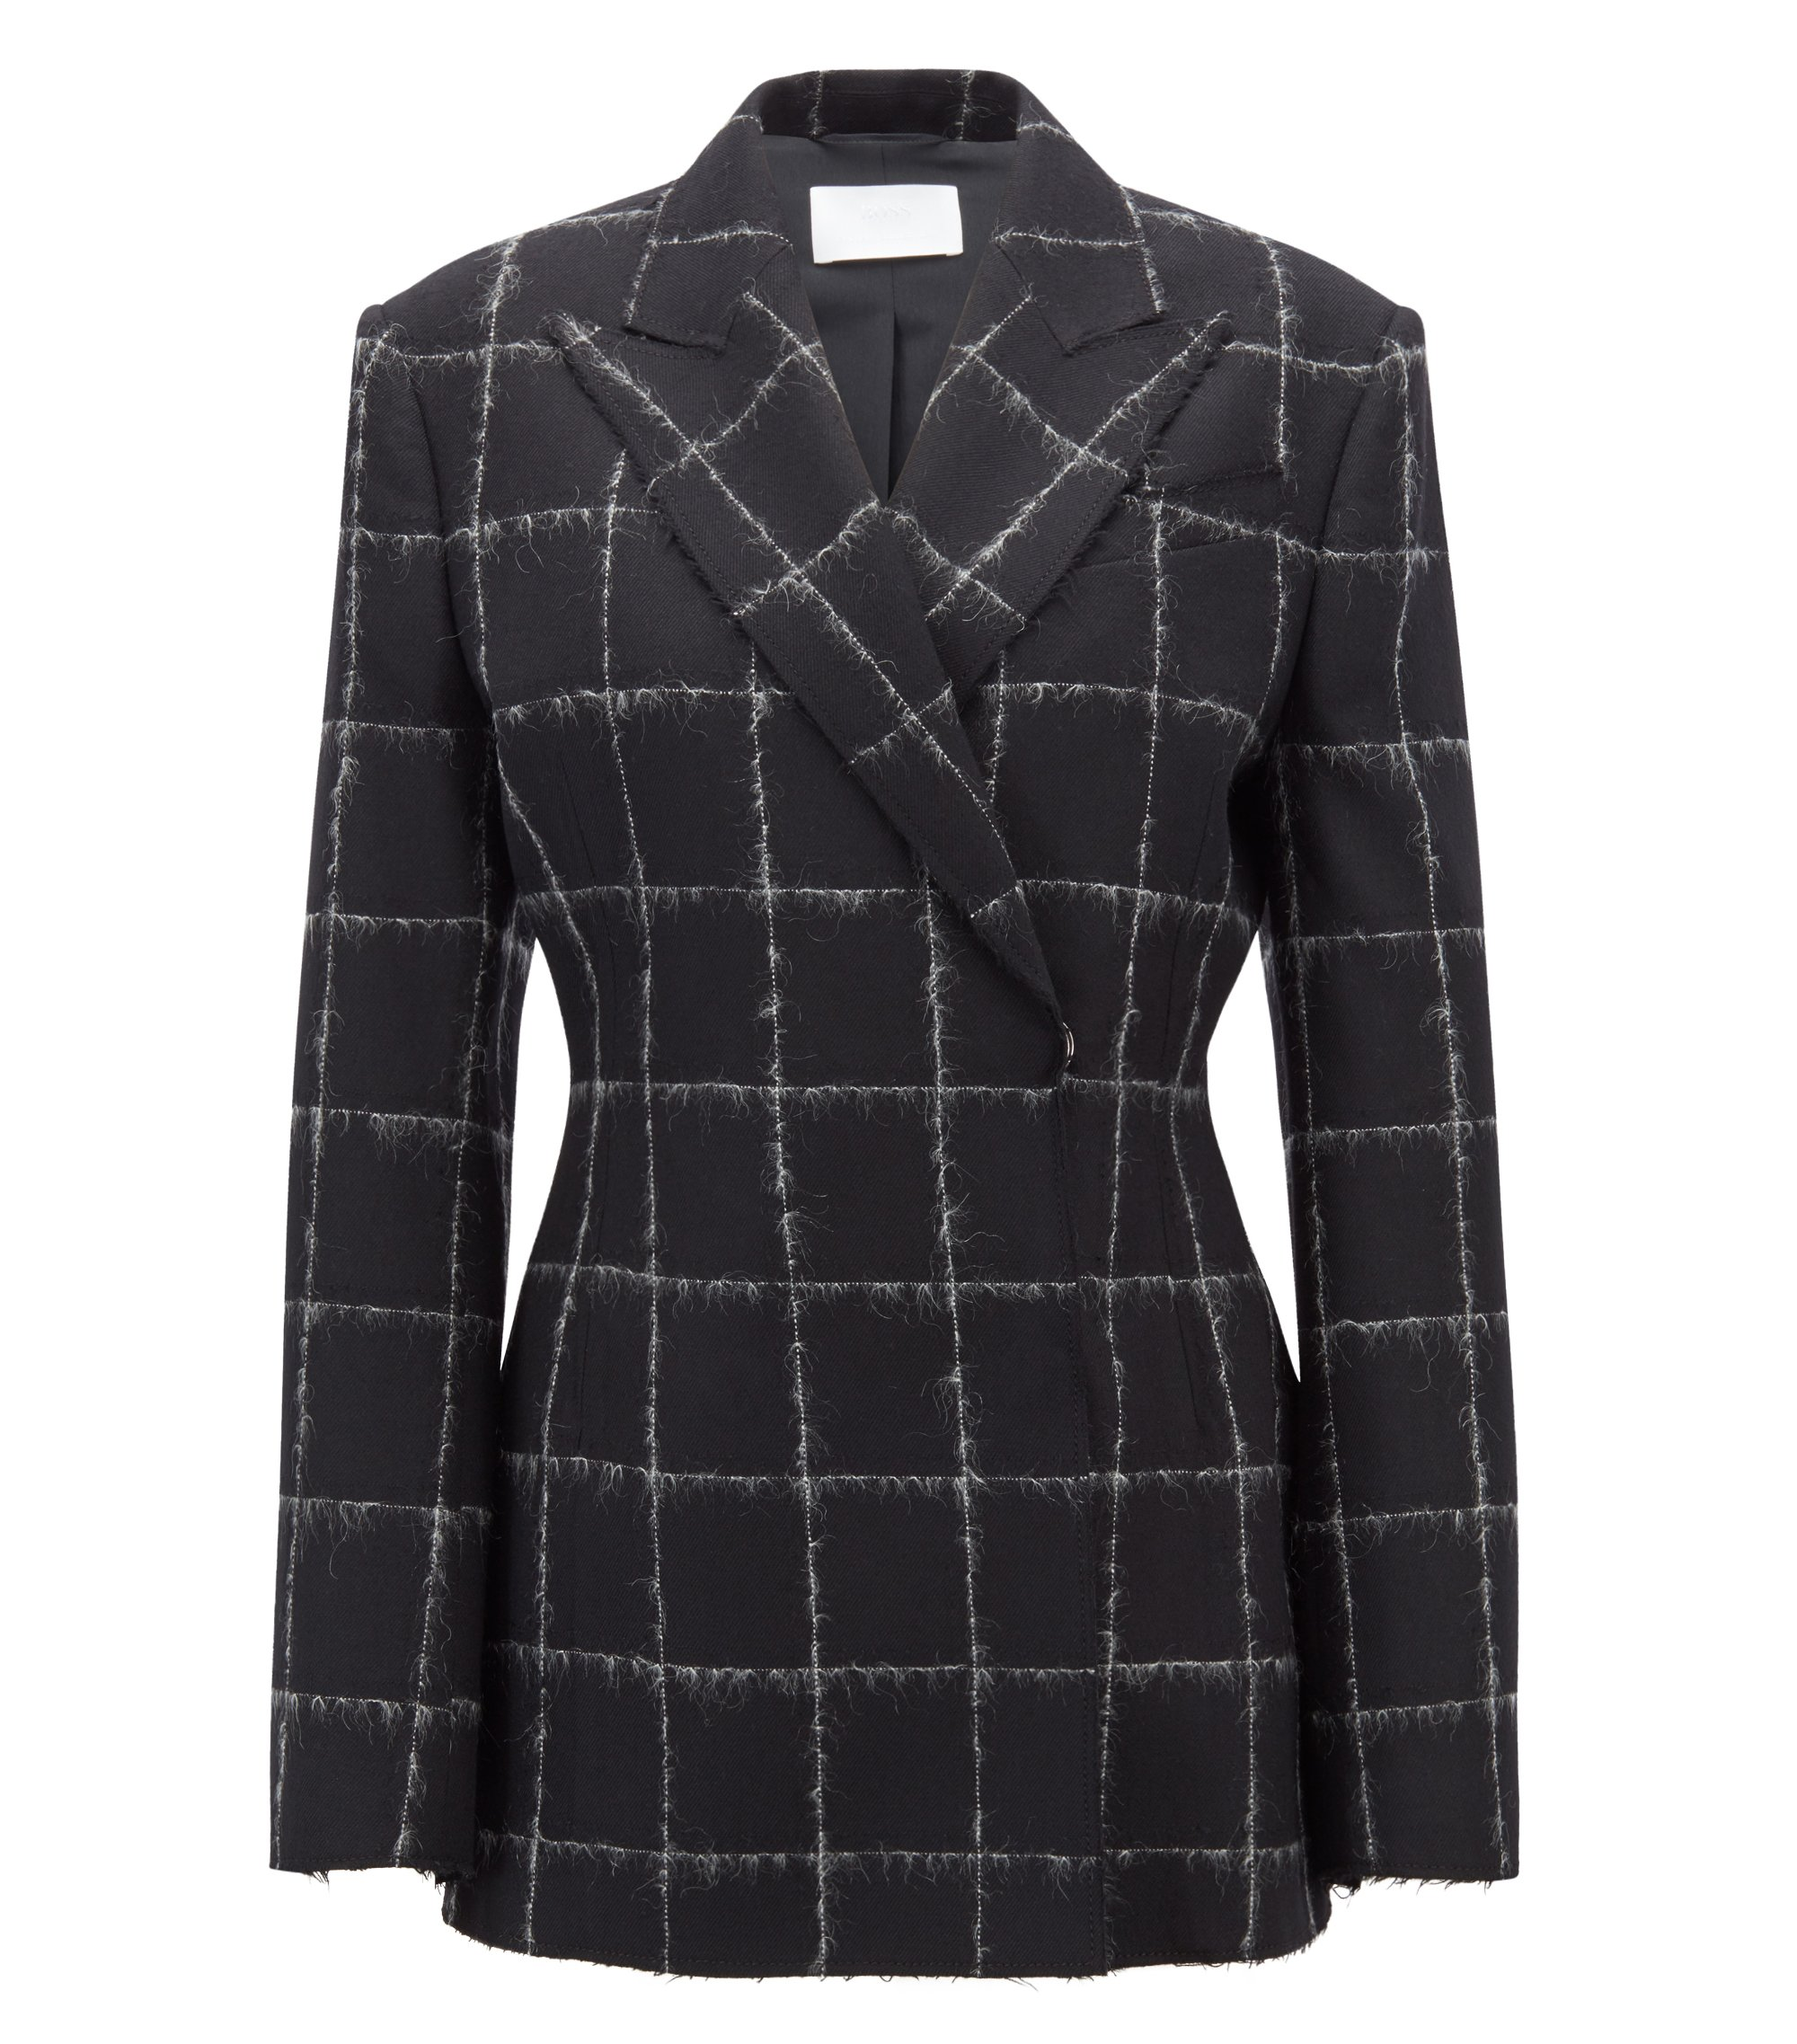 Gallery Collection oversized-fit jacket in a wool blend, Patterned